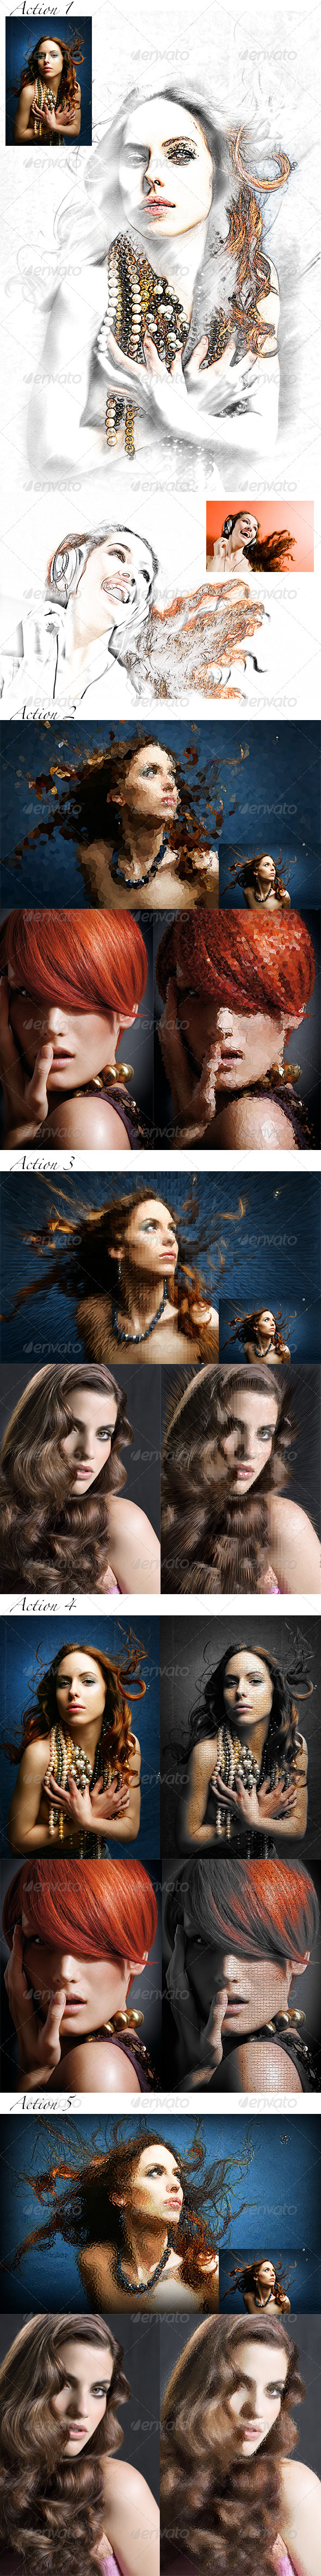 GraphicRiver 5 Abstract Actions 8568487